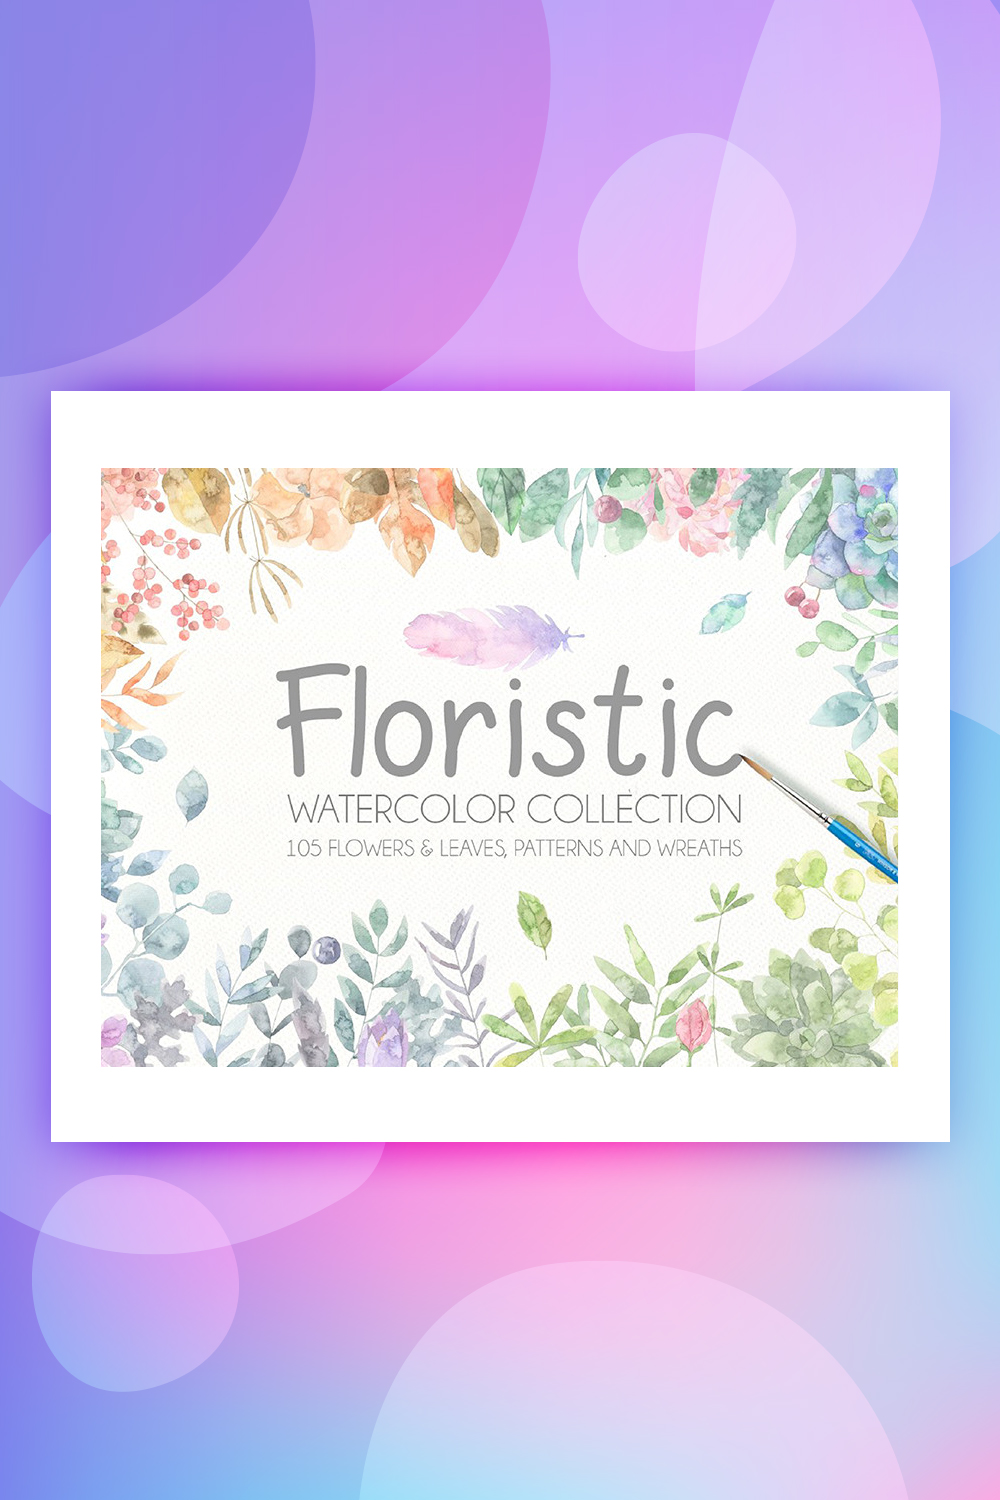 Floristic Watercolor Collection Illustration